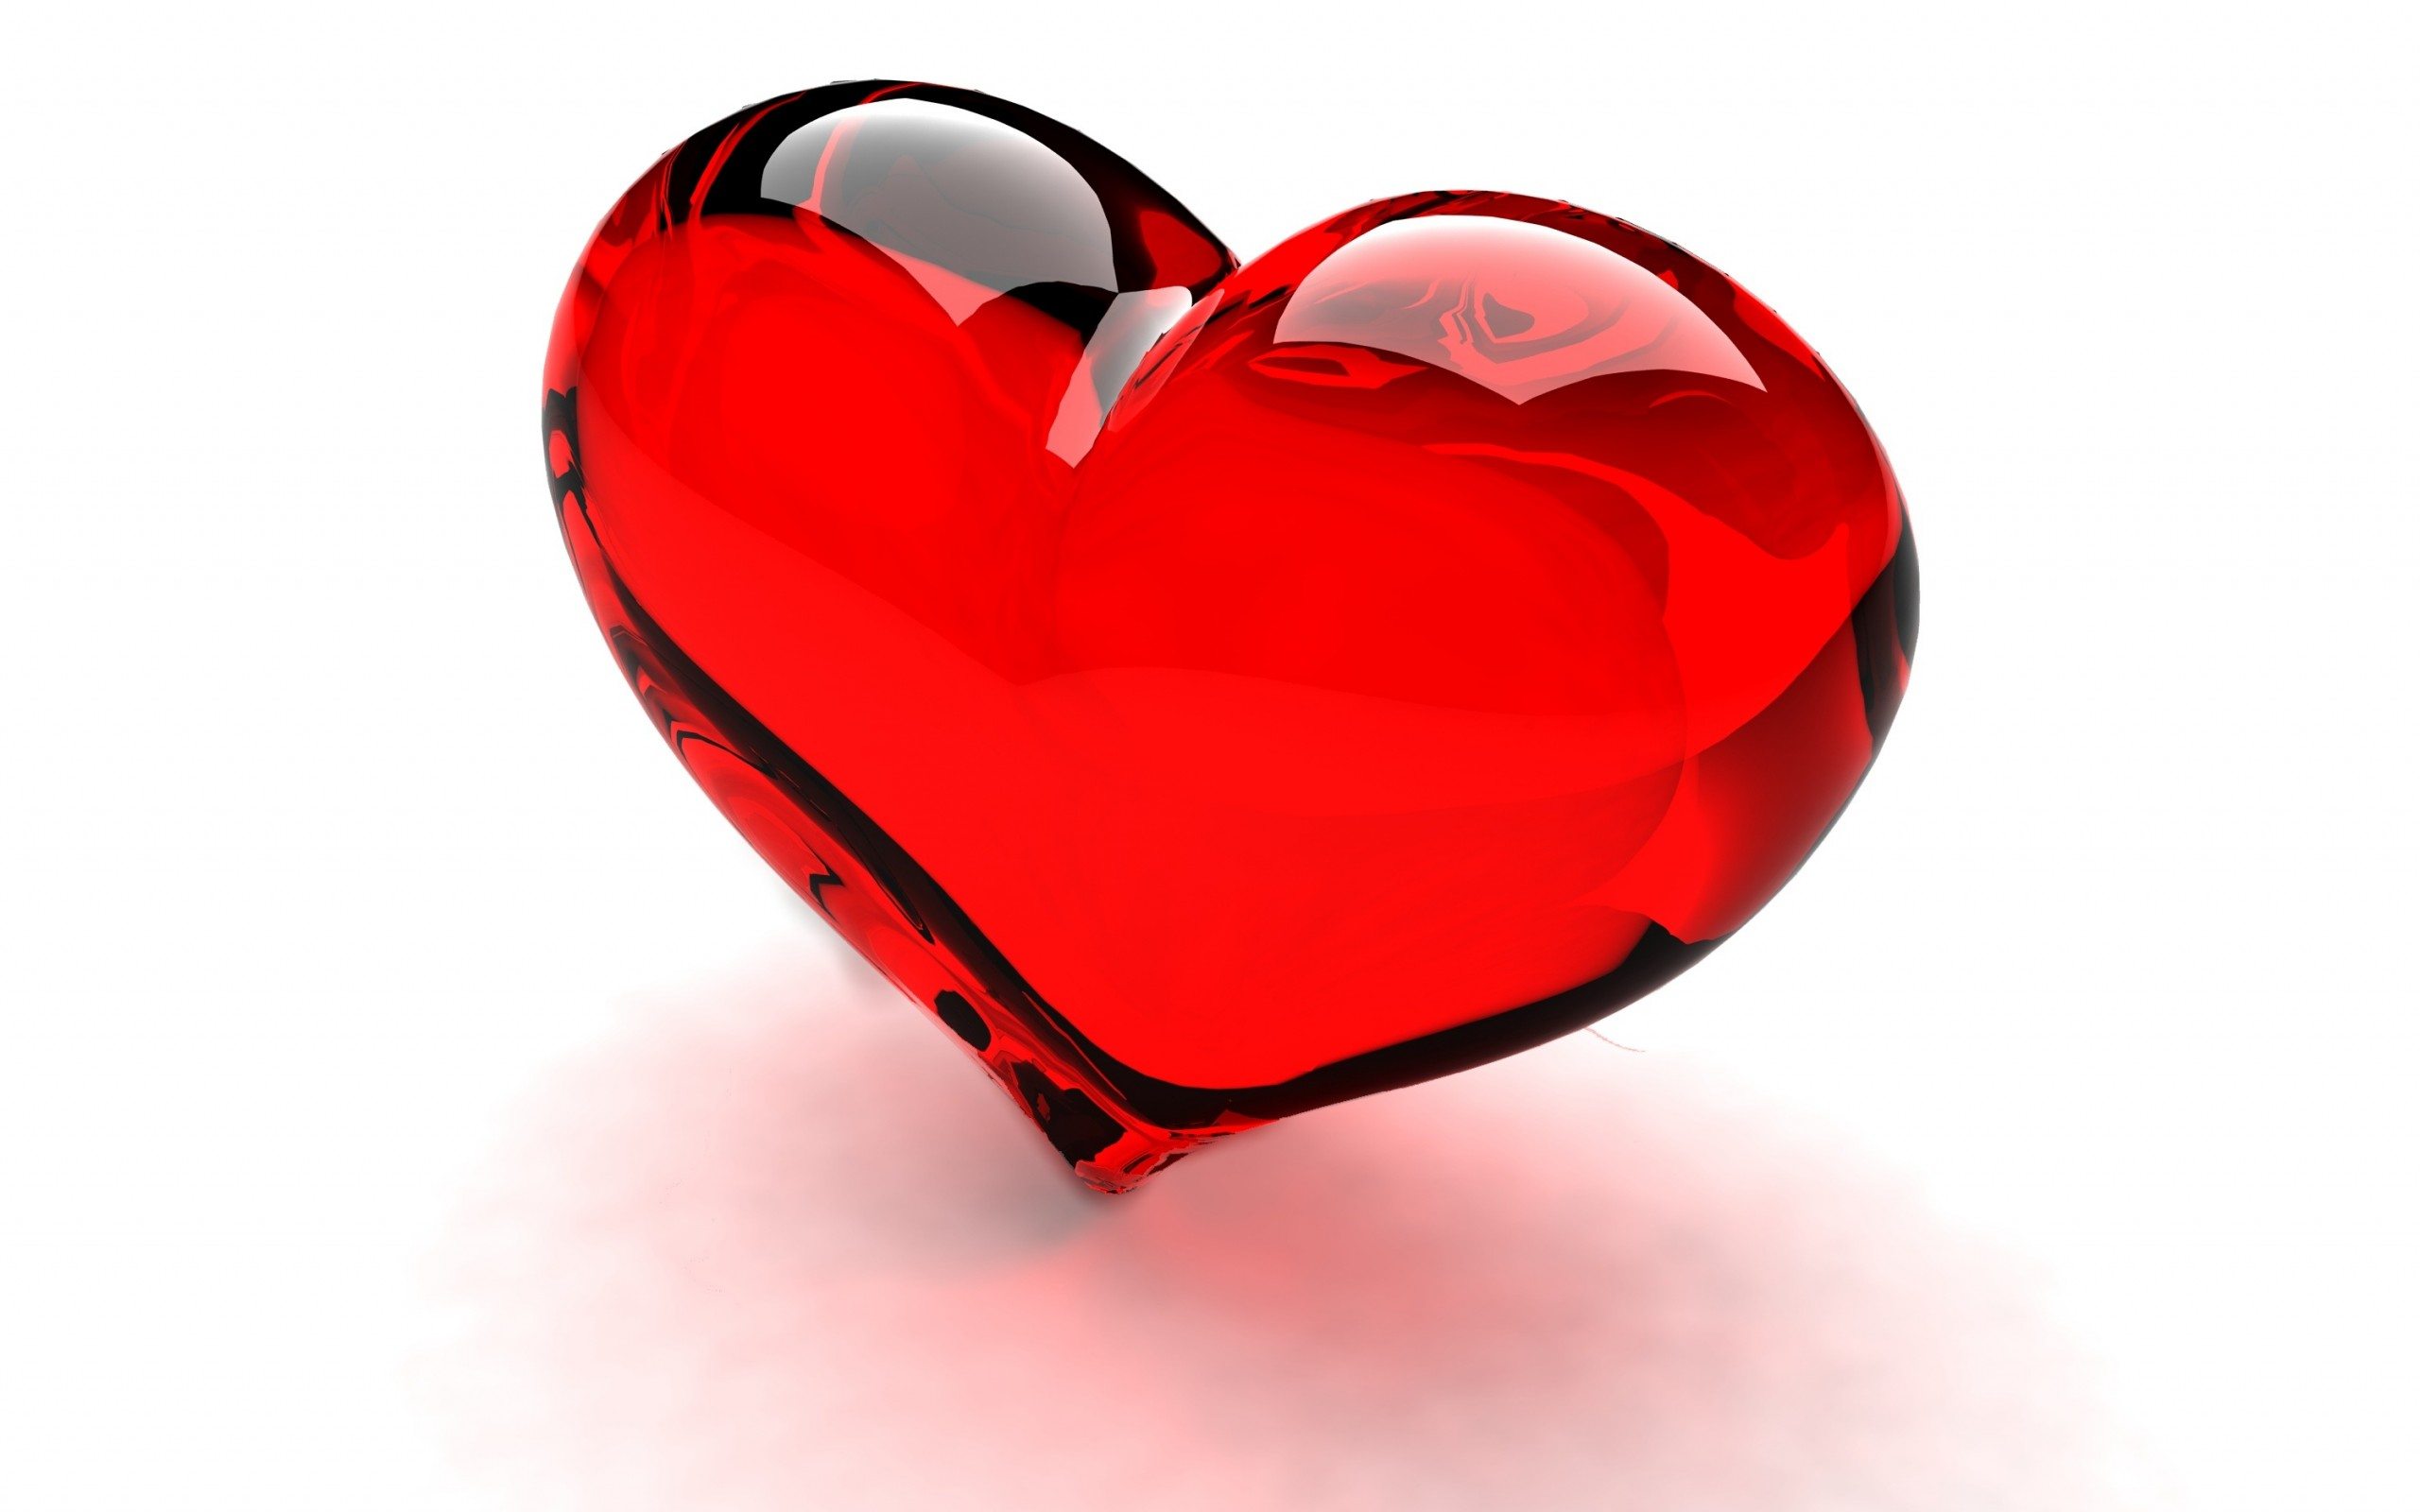 78 Best images about Hearts on Pinterest | Heart, Timeline and